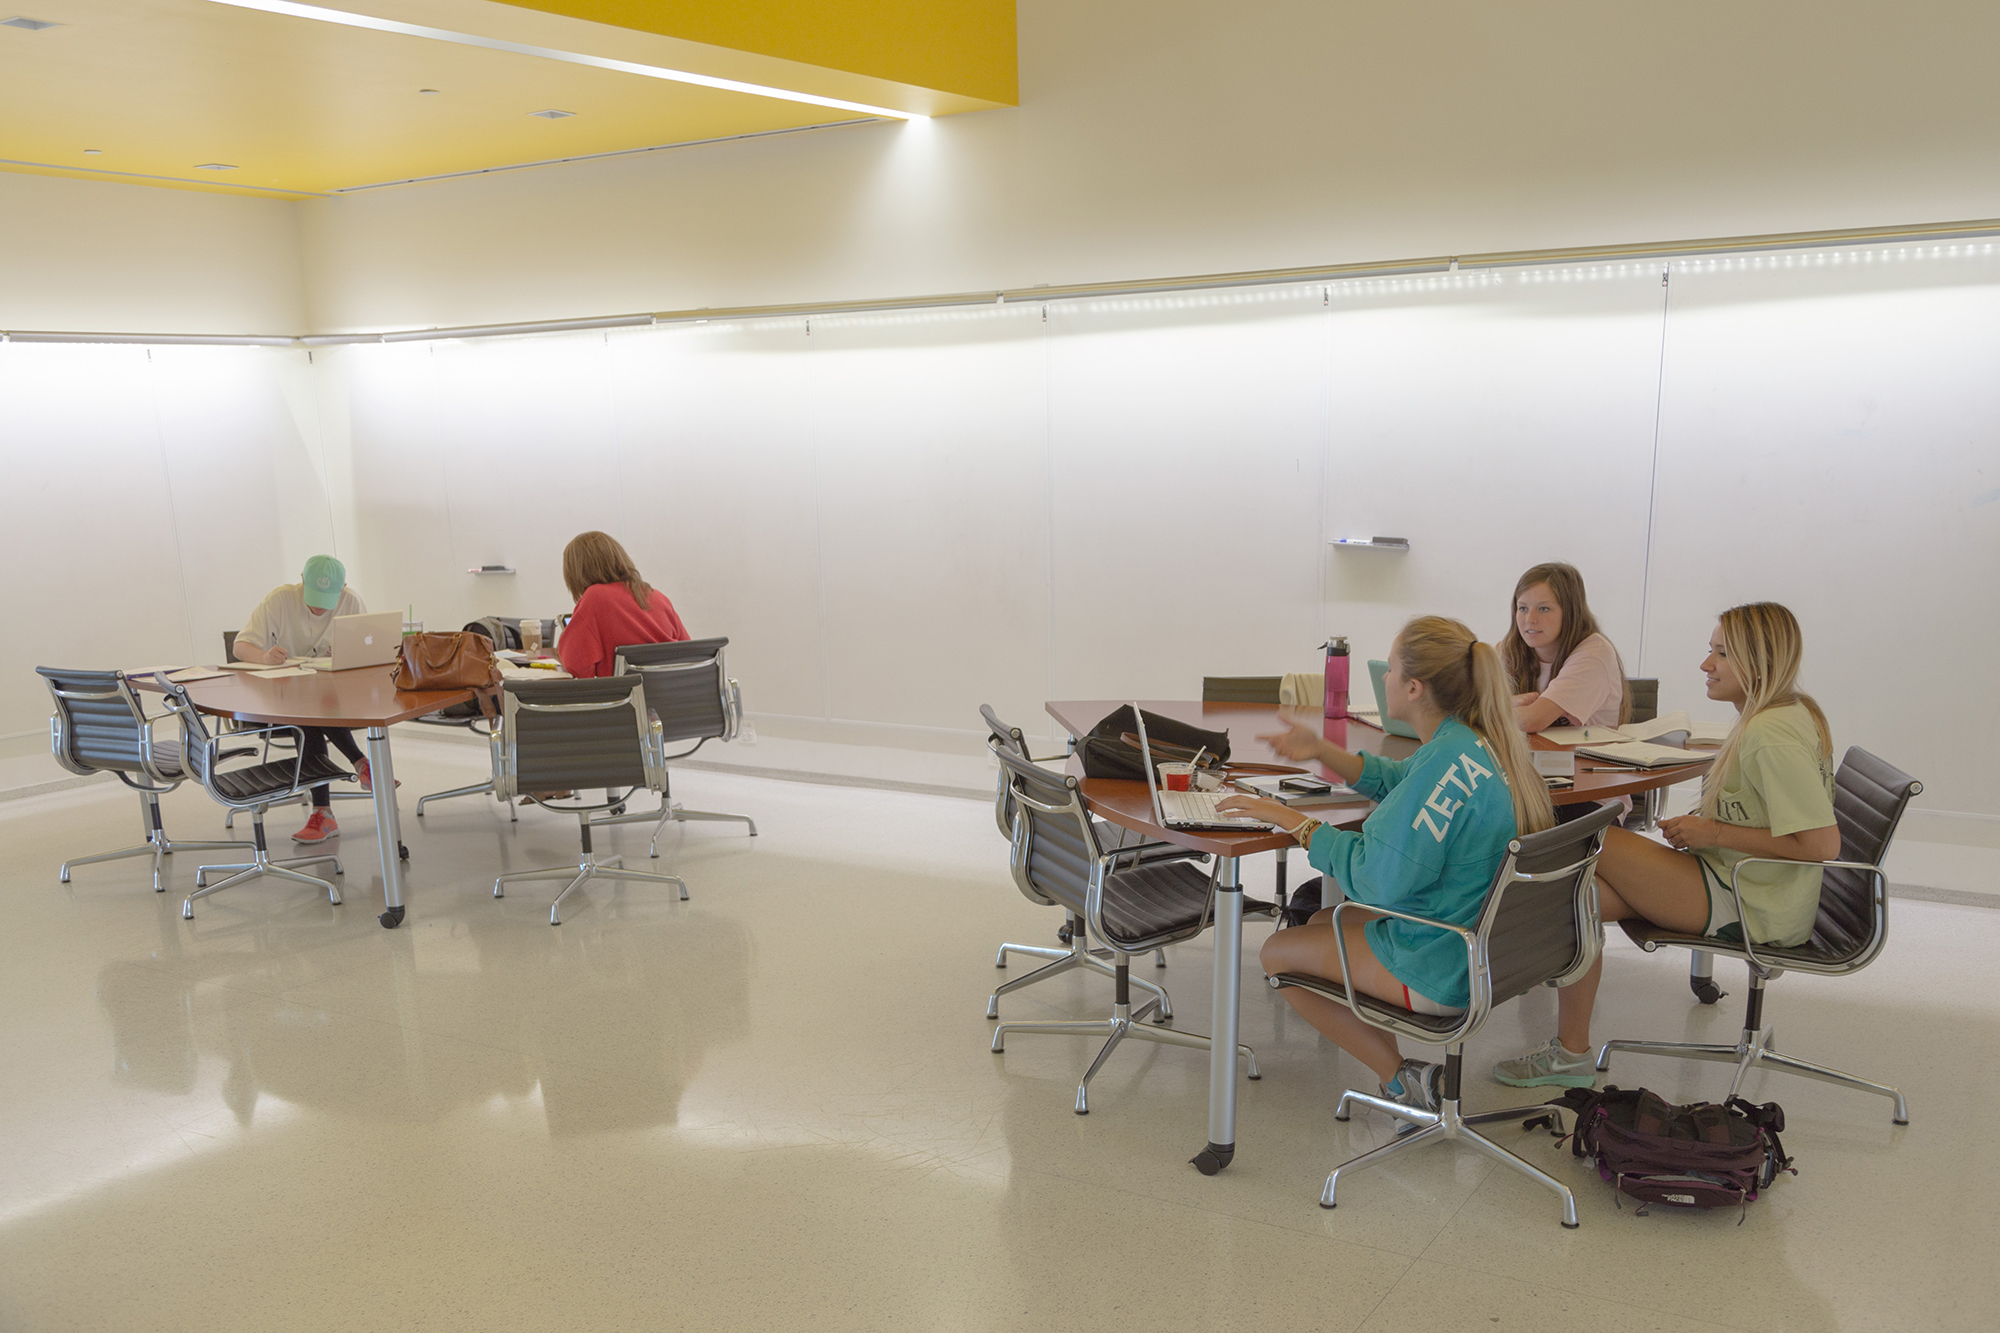 Students work at tables surrounded by white board walls in the idea alcove